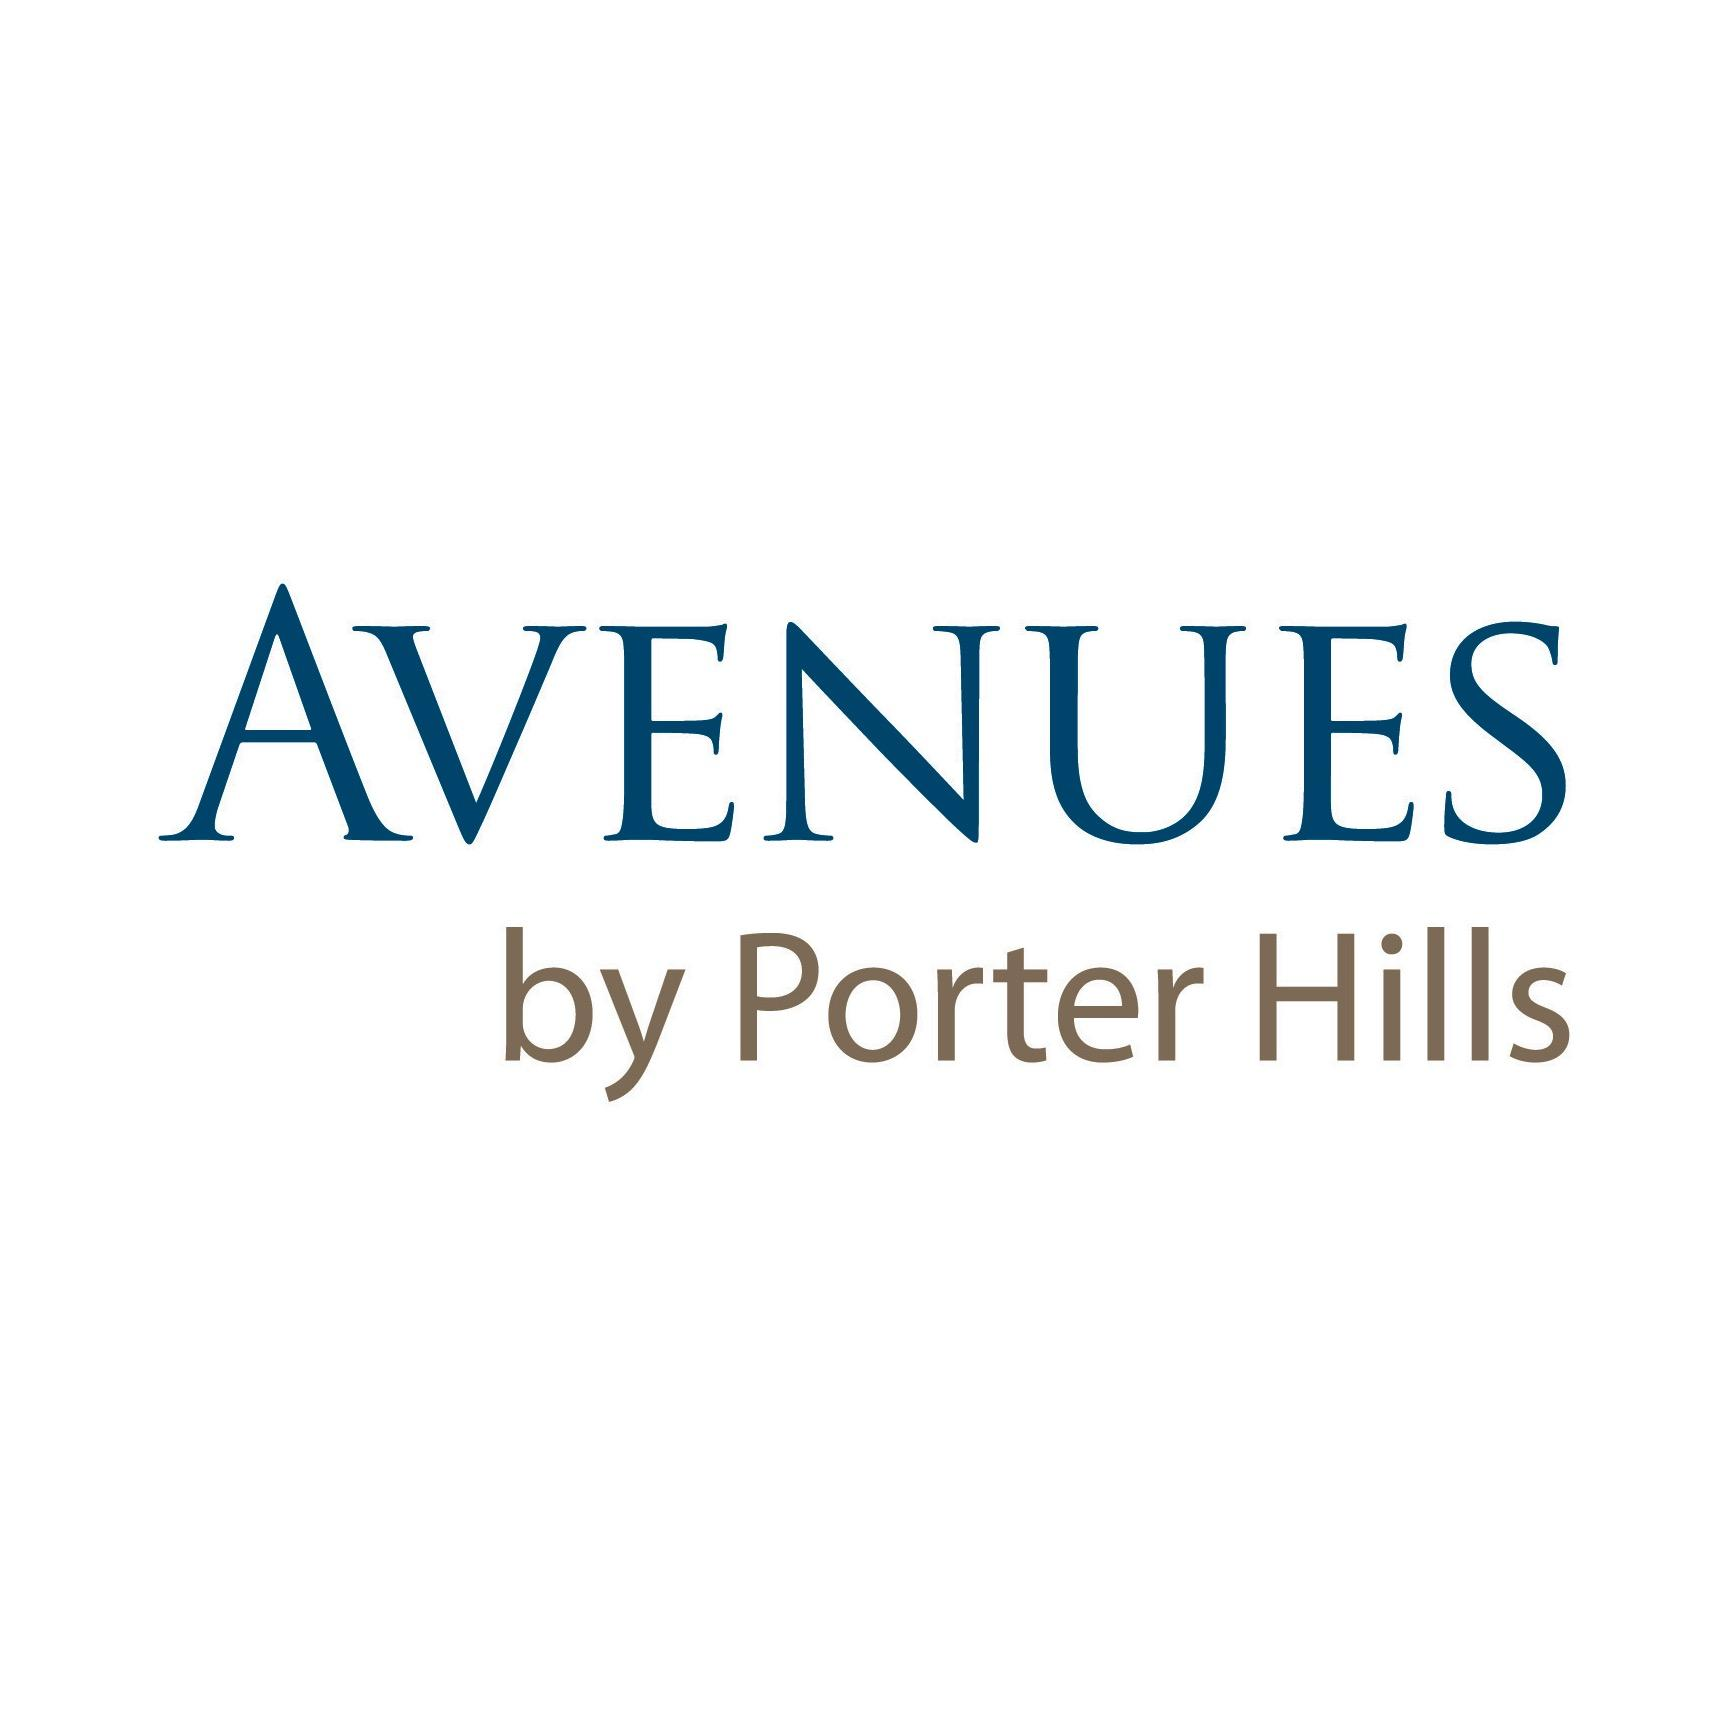 Avenues by Porter Hills